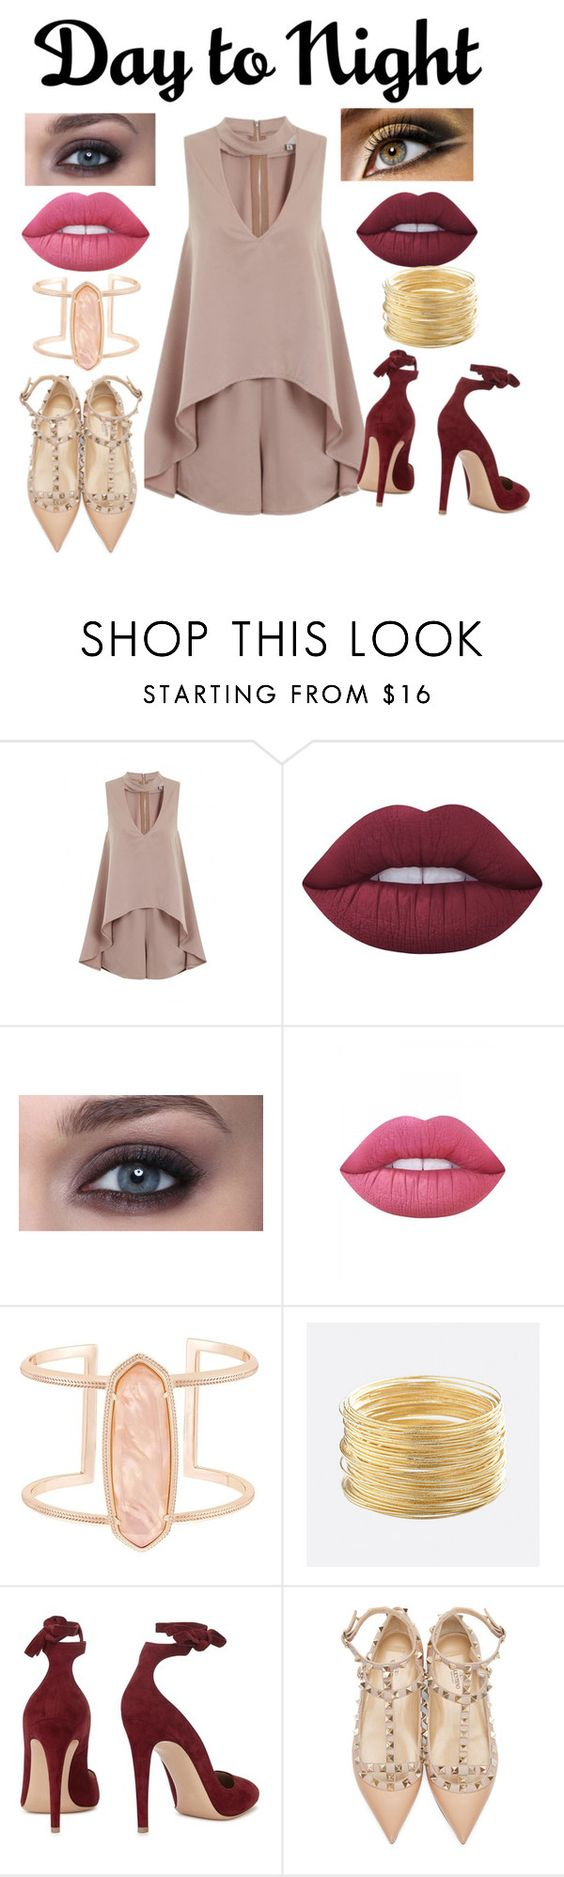 """day to night"" by mojany ❤ liked on Polyvore featuring Lime Crime, Kendra Scott, Avenue, Gianvito Rossi, Valentino, DayToNight and romper"